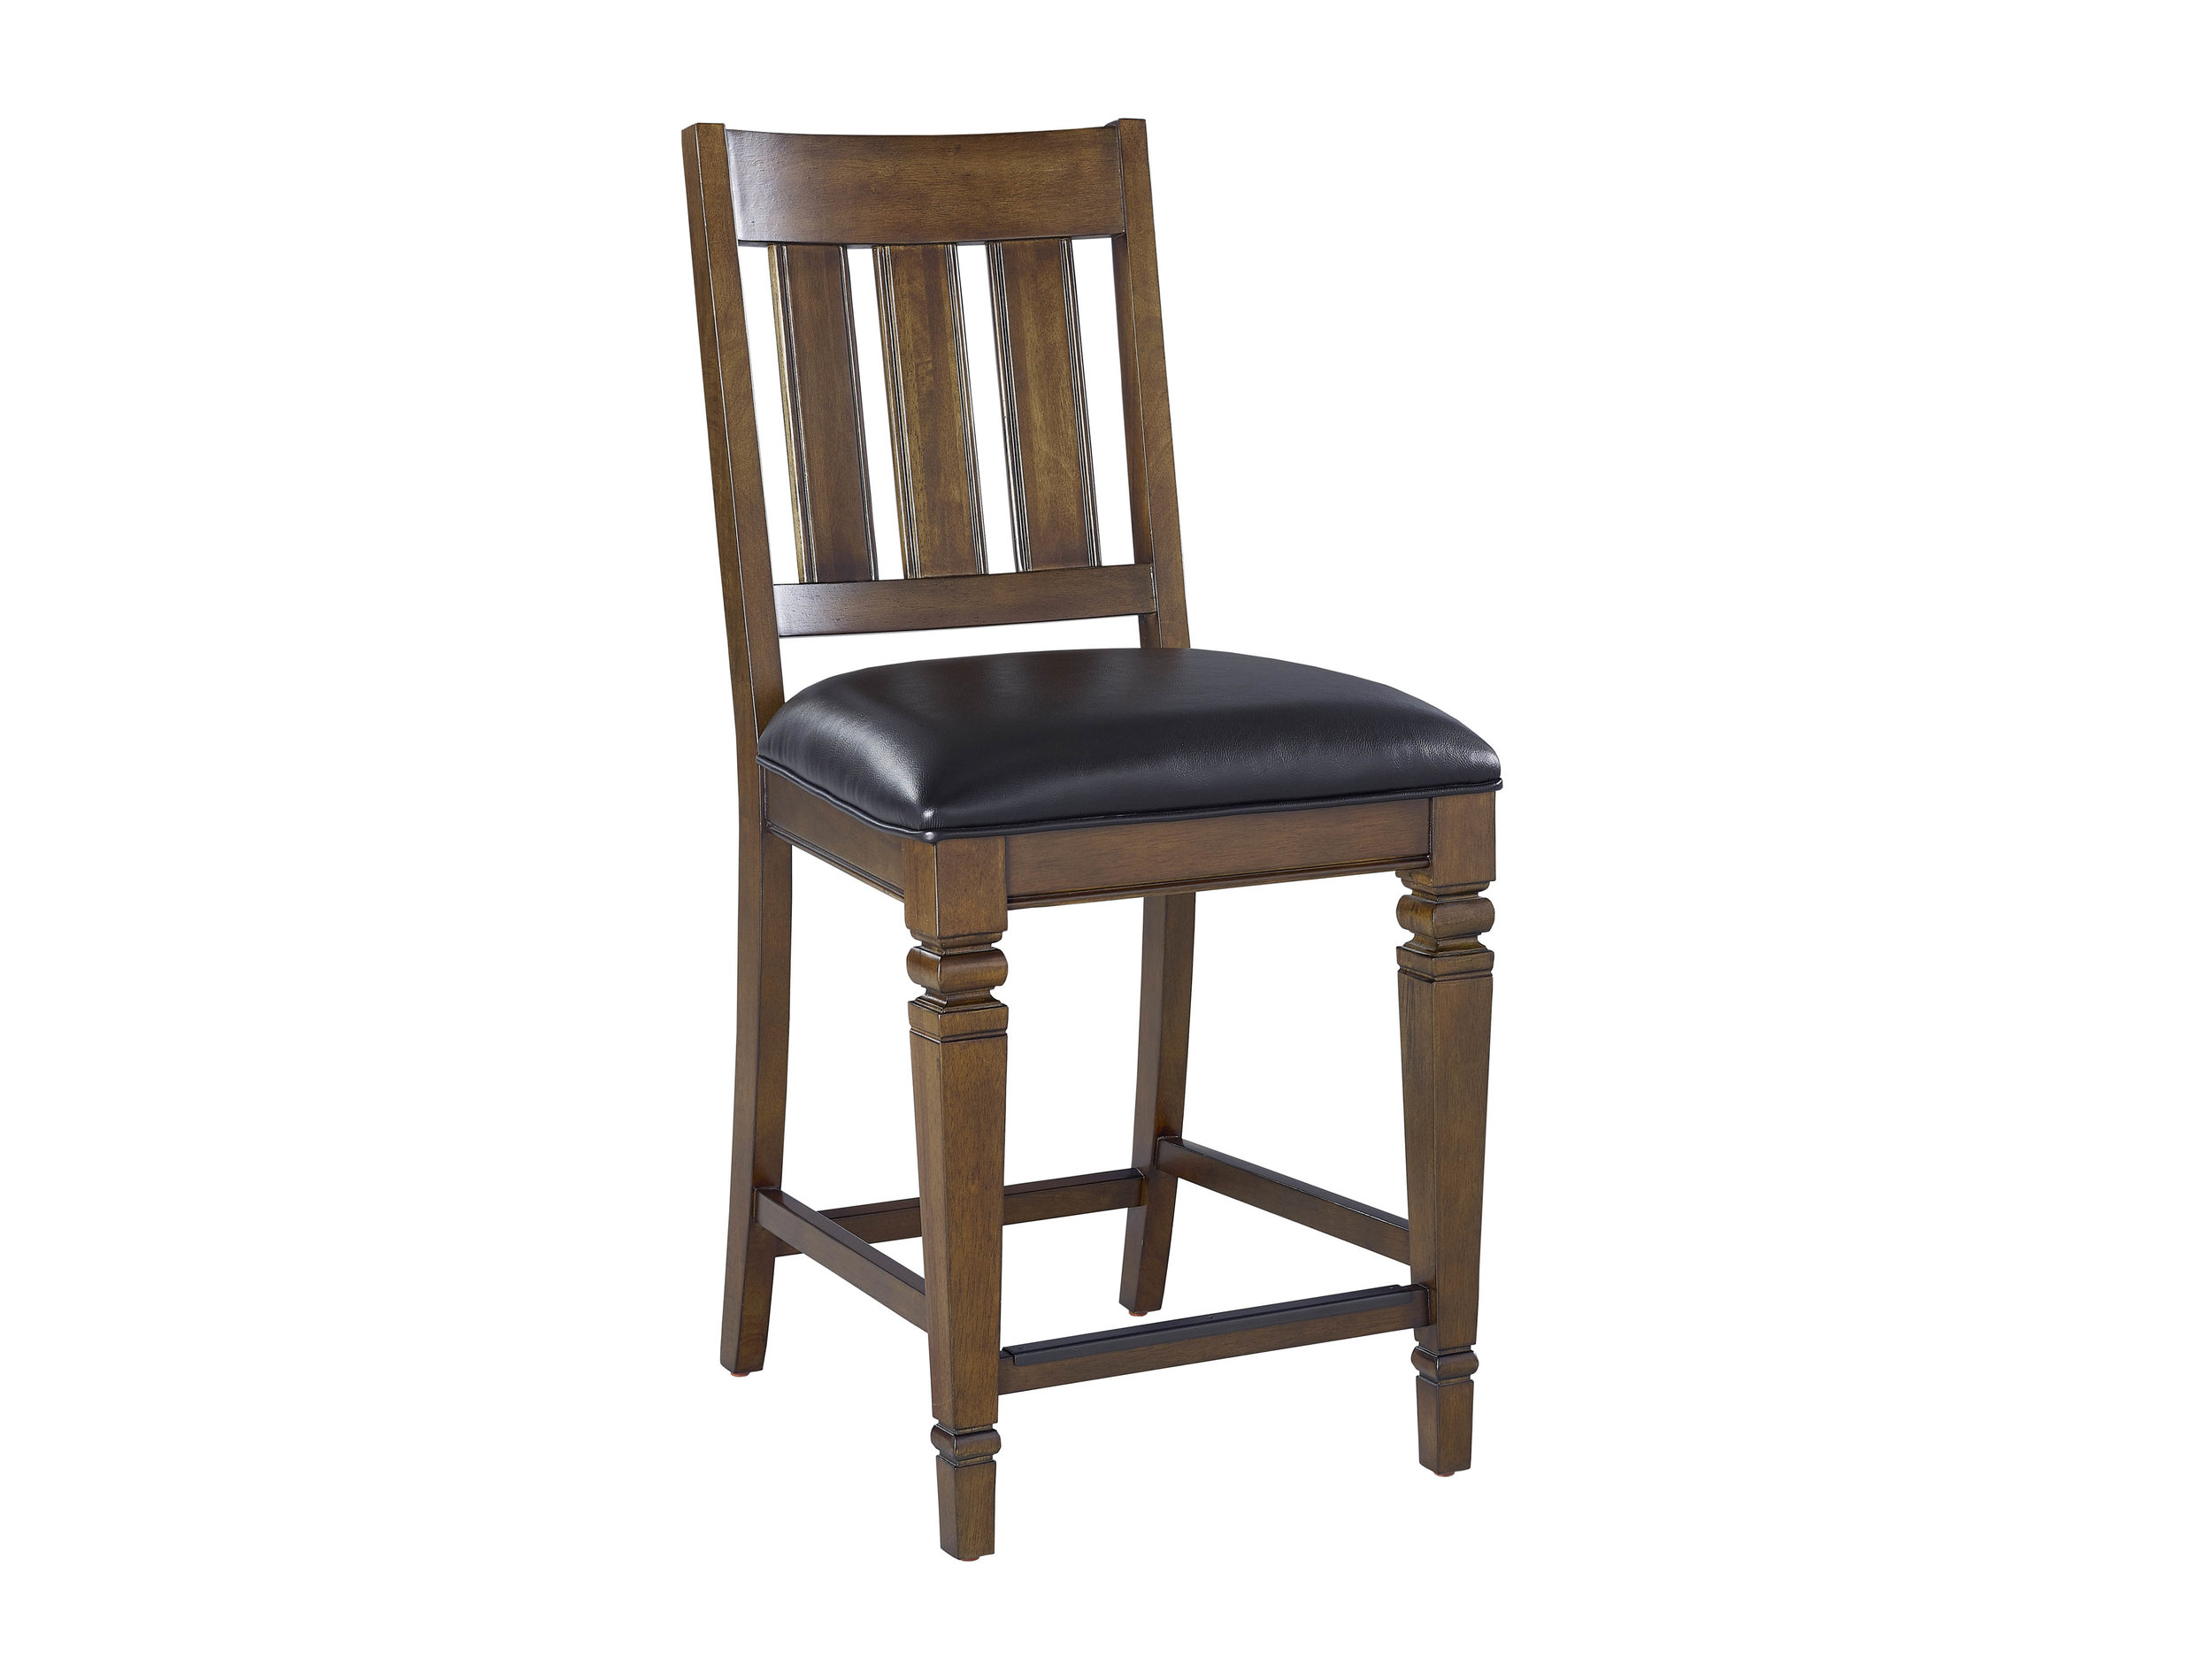 8D200CTCH-DR-silo-chair_for_web.jpg